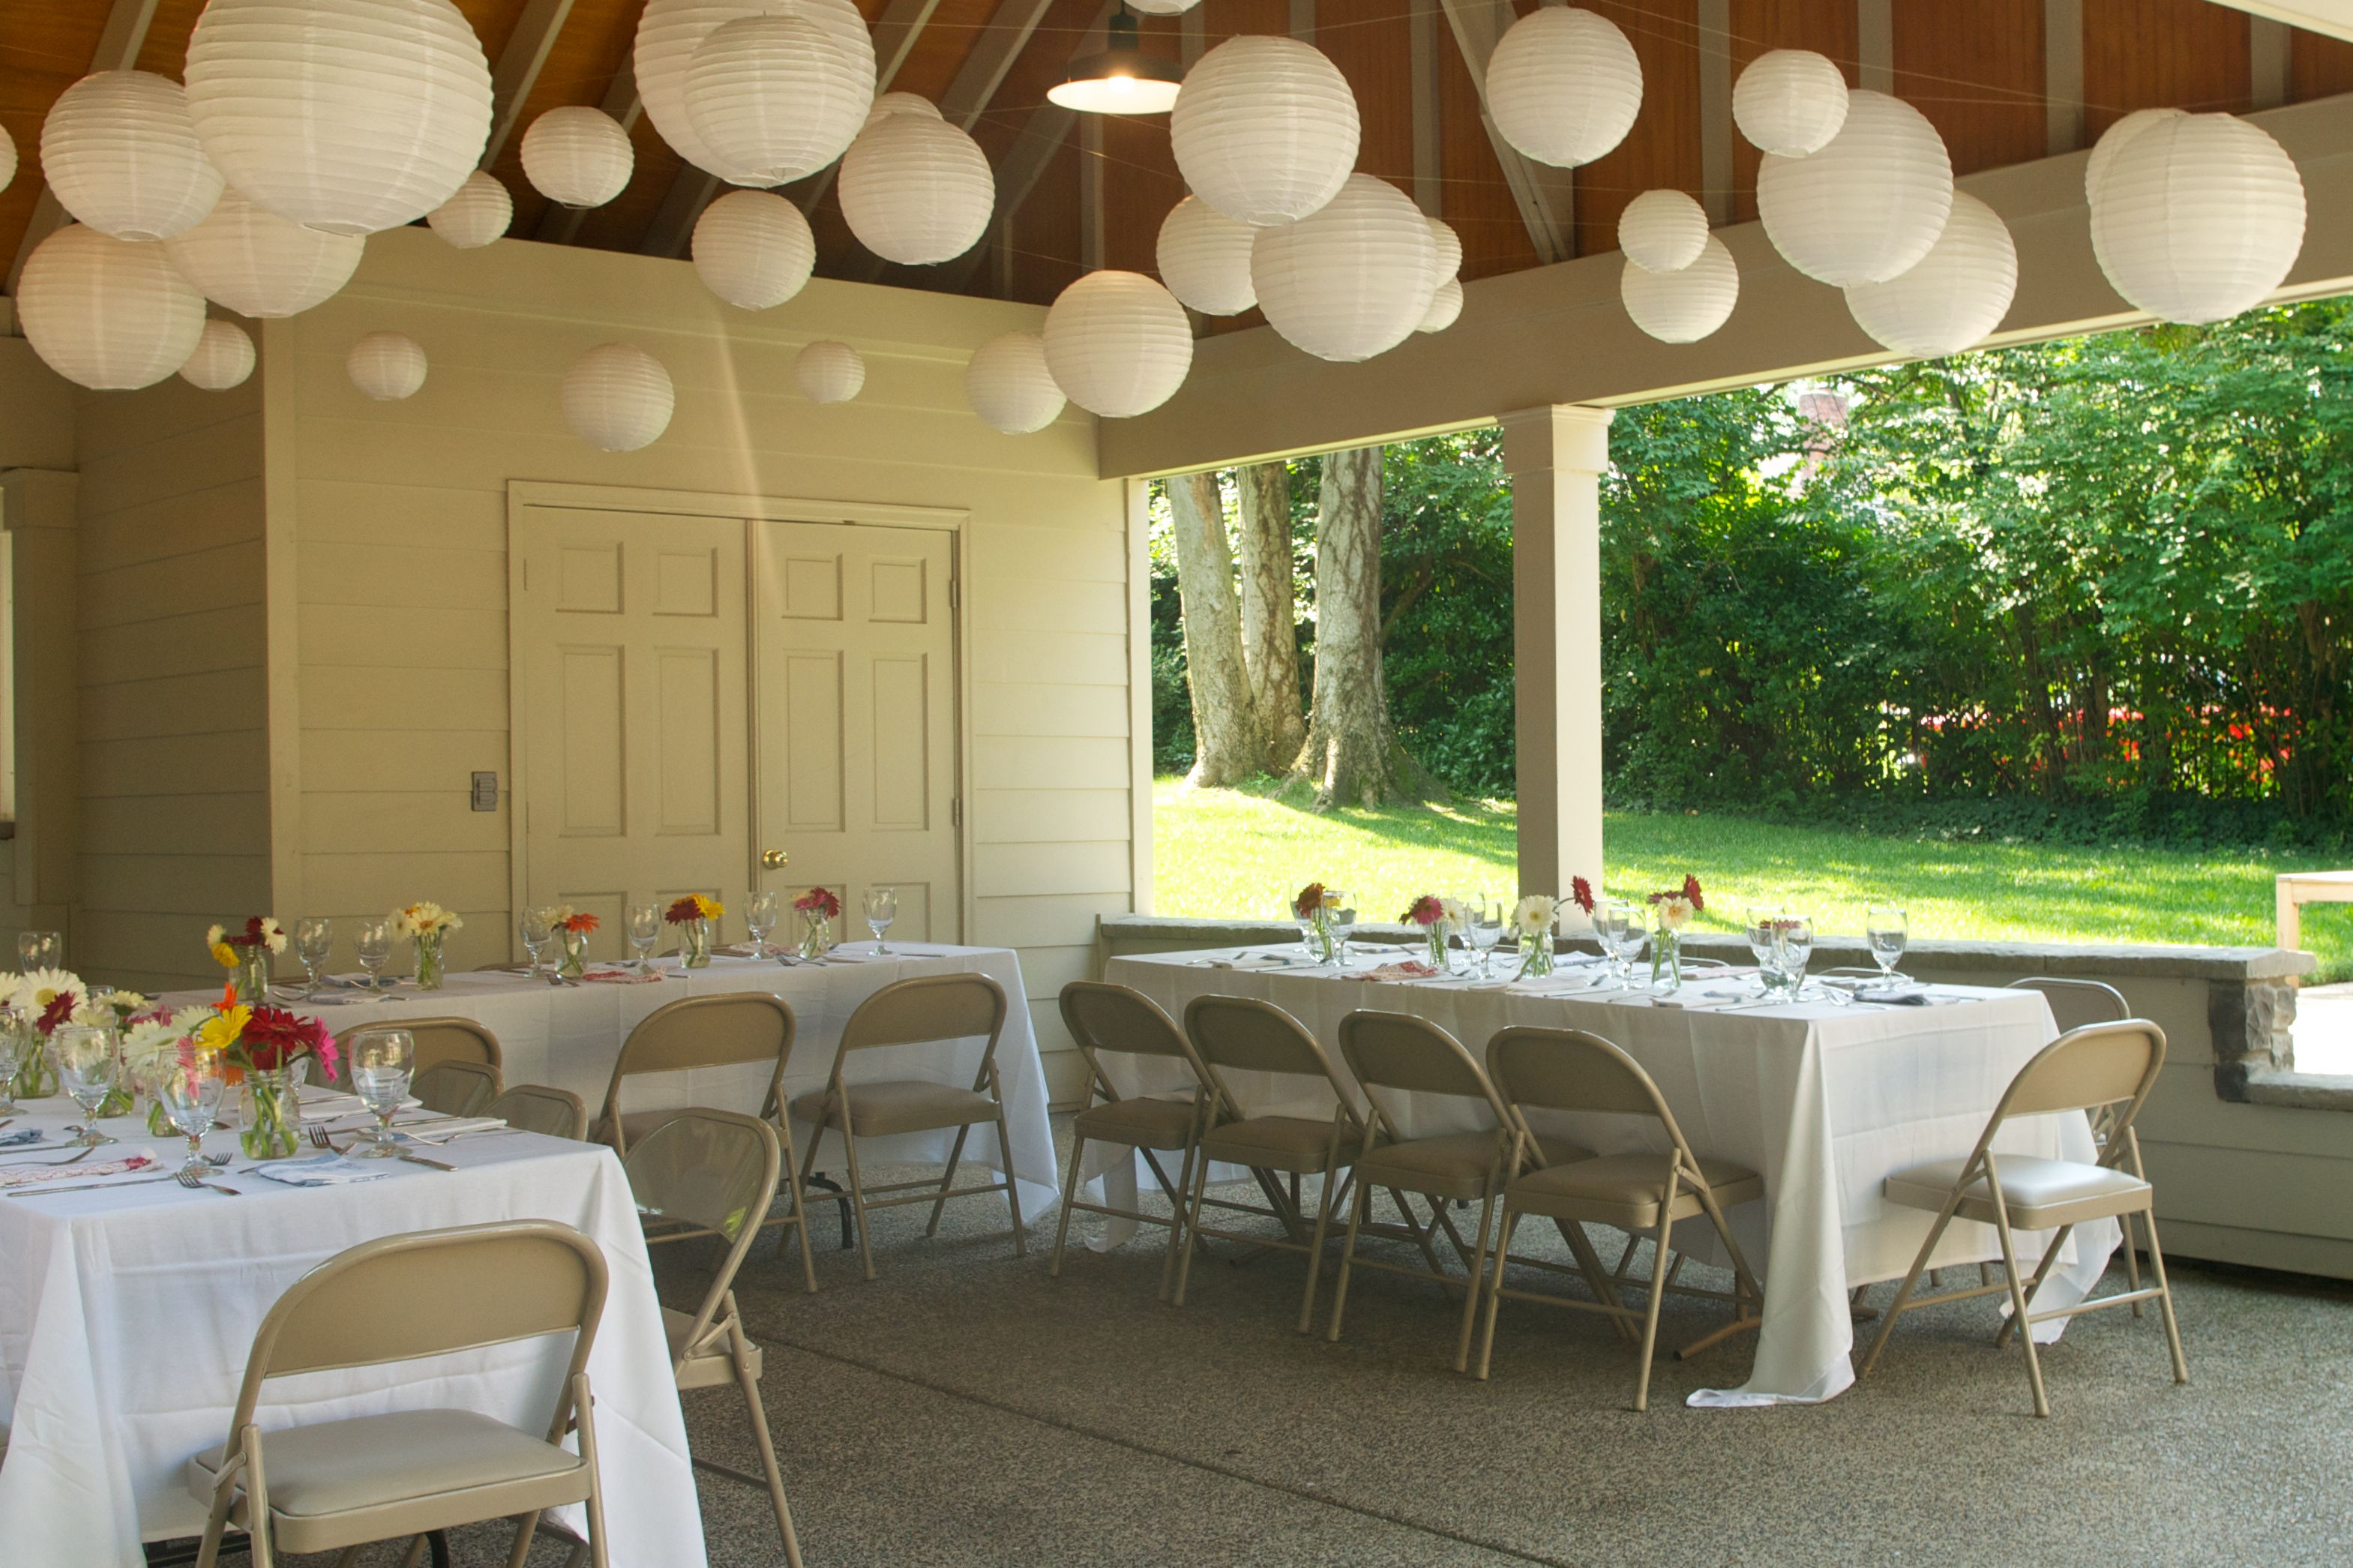 Party In Carport Carport Outdoor Party House Inspiration